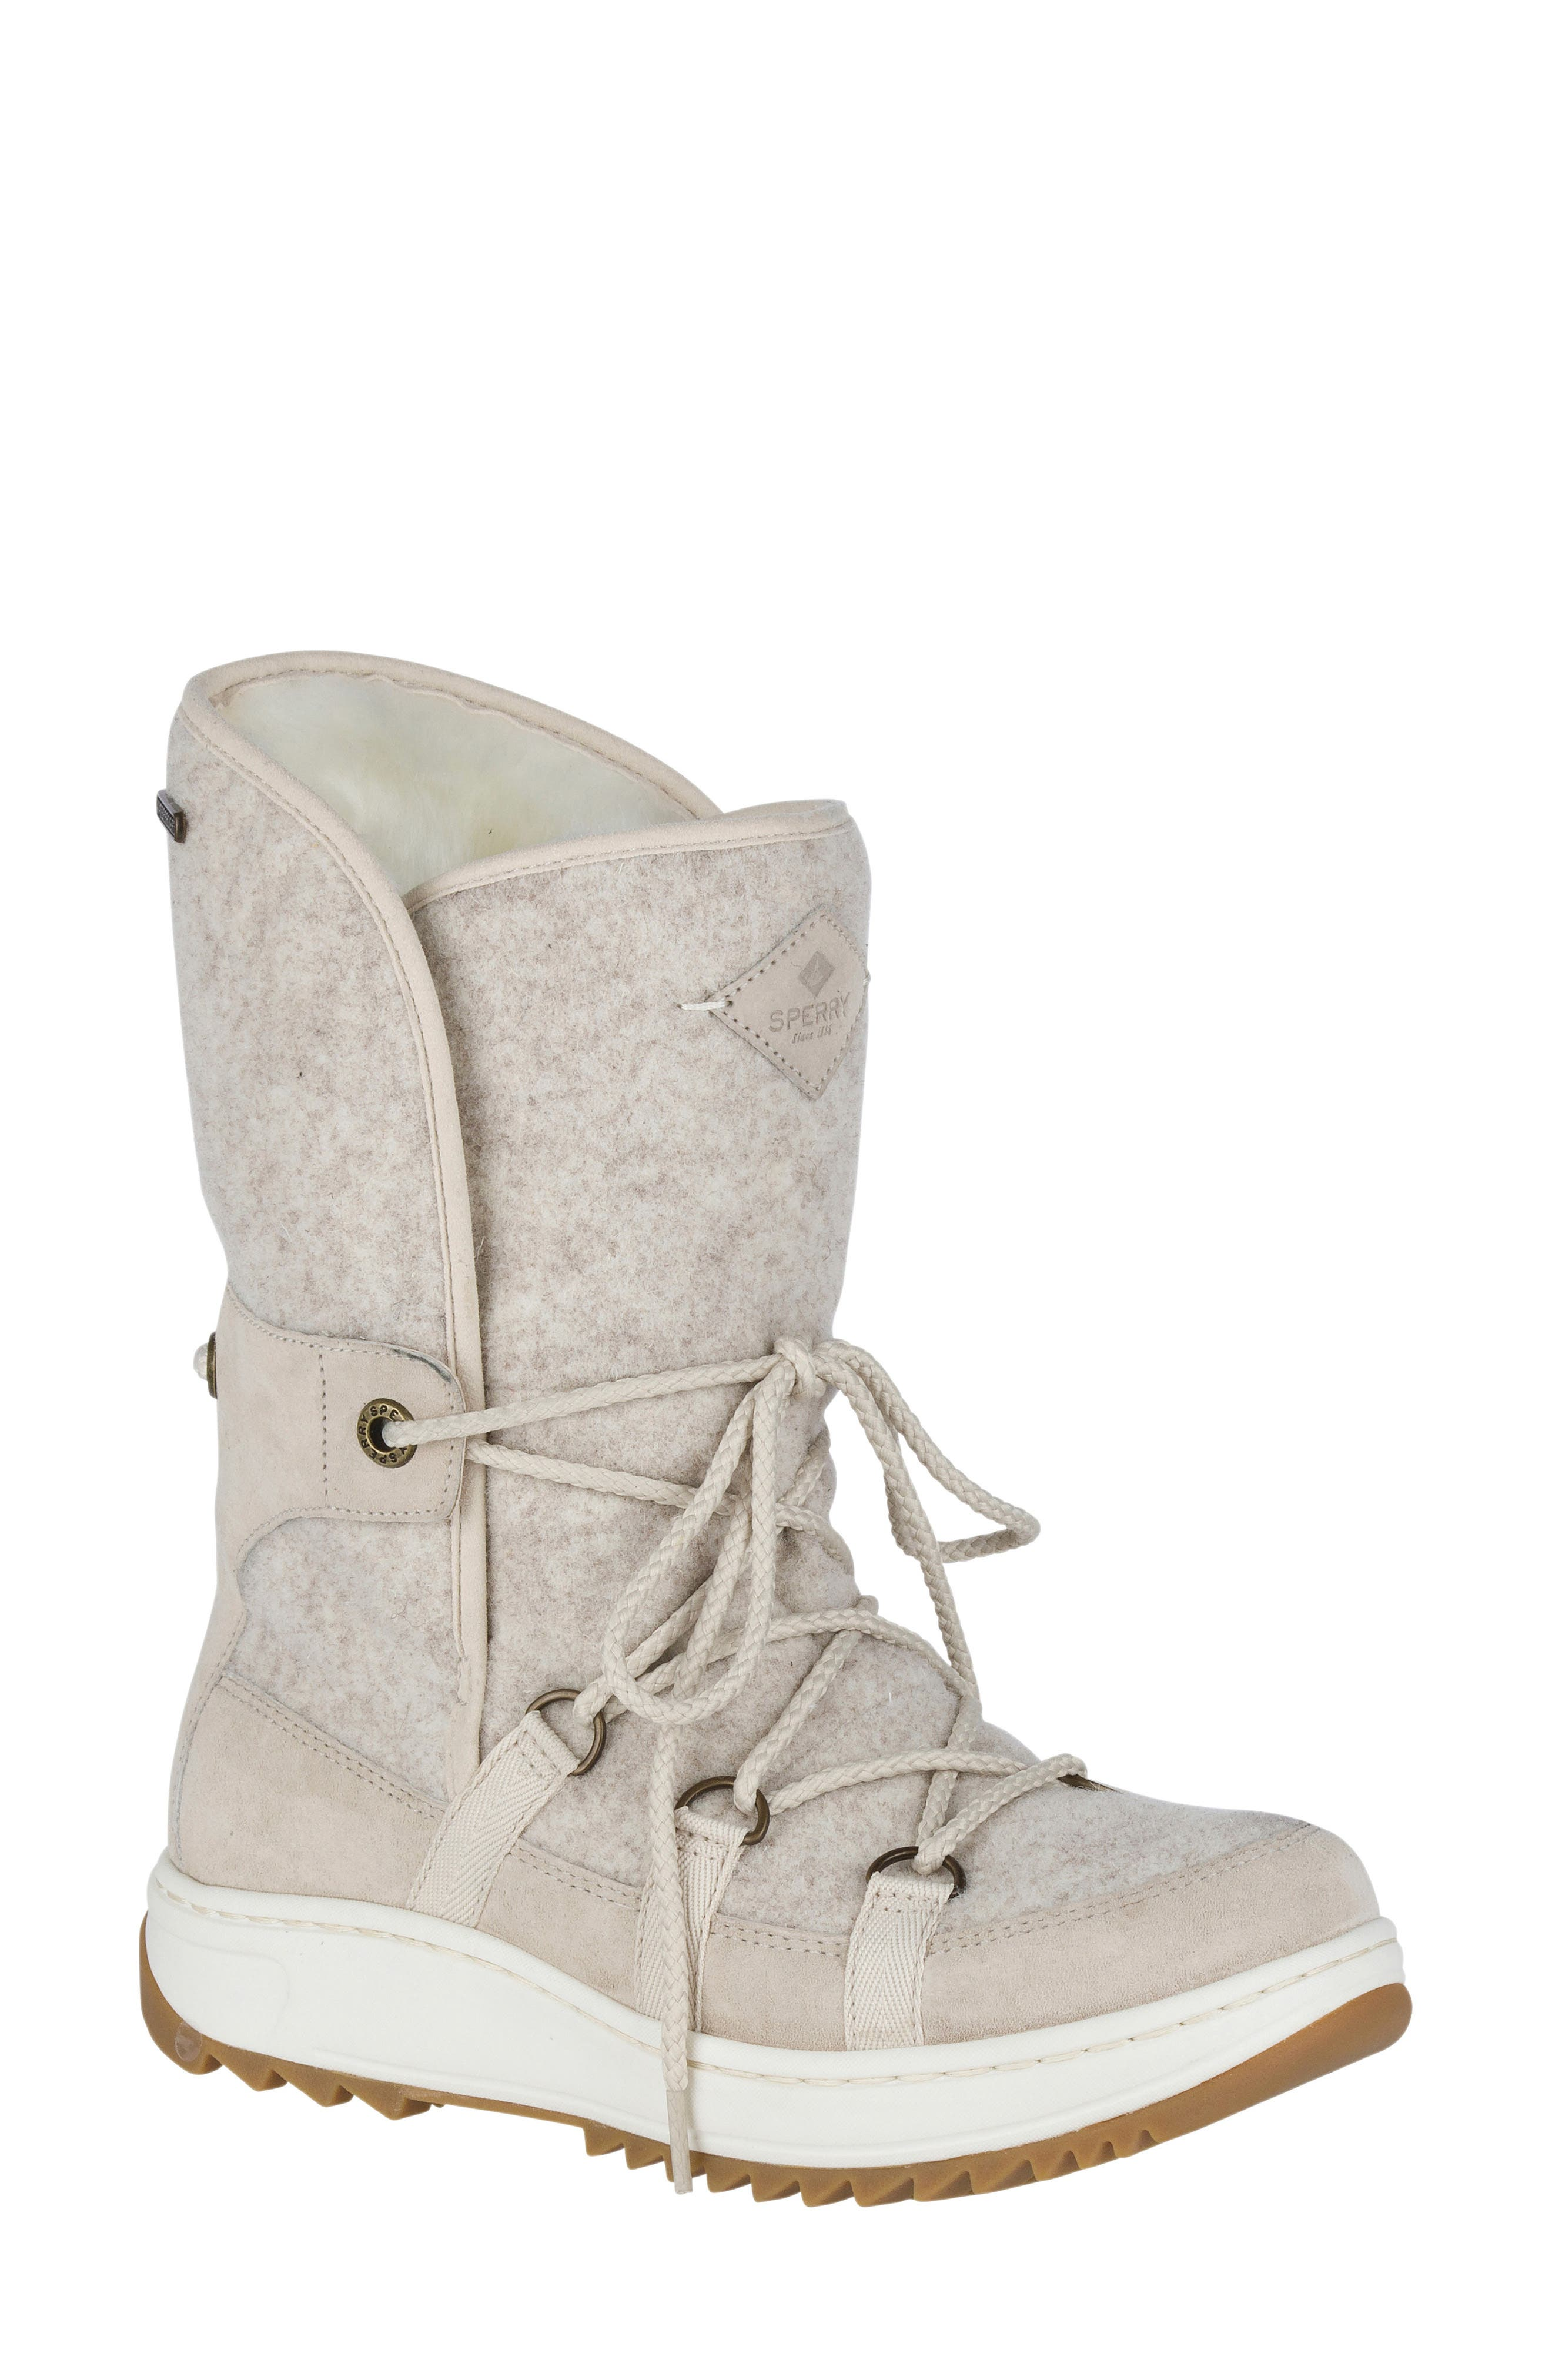 Powder Ice Cap Thinsulate Insulated Water Resistant Boot,                             Main thumbnail 1, color,                             Ivory Suede